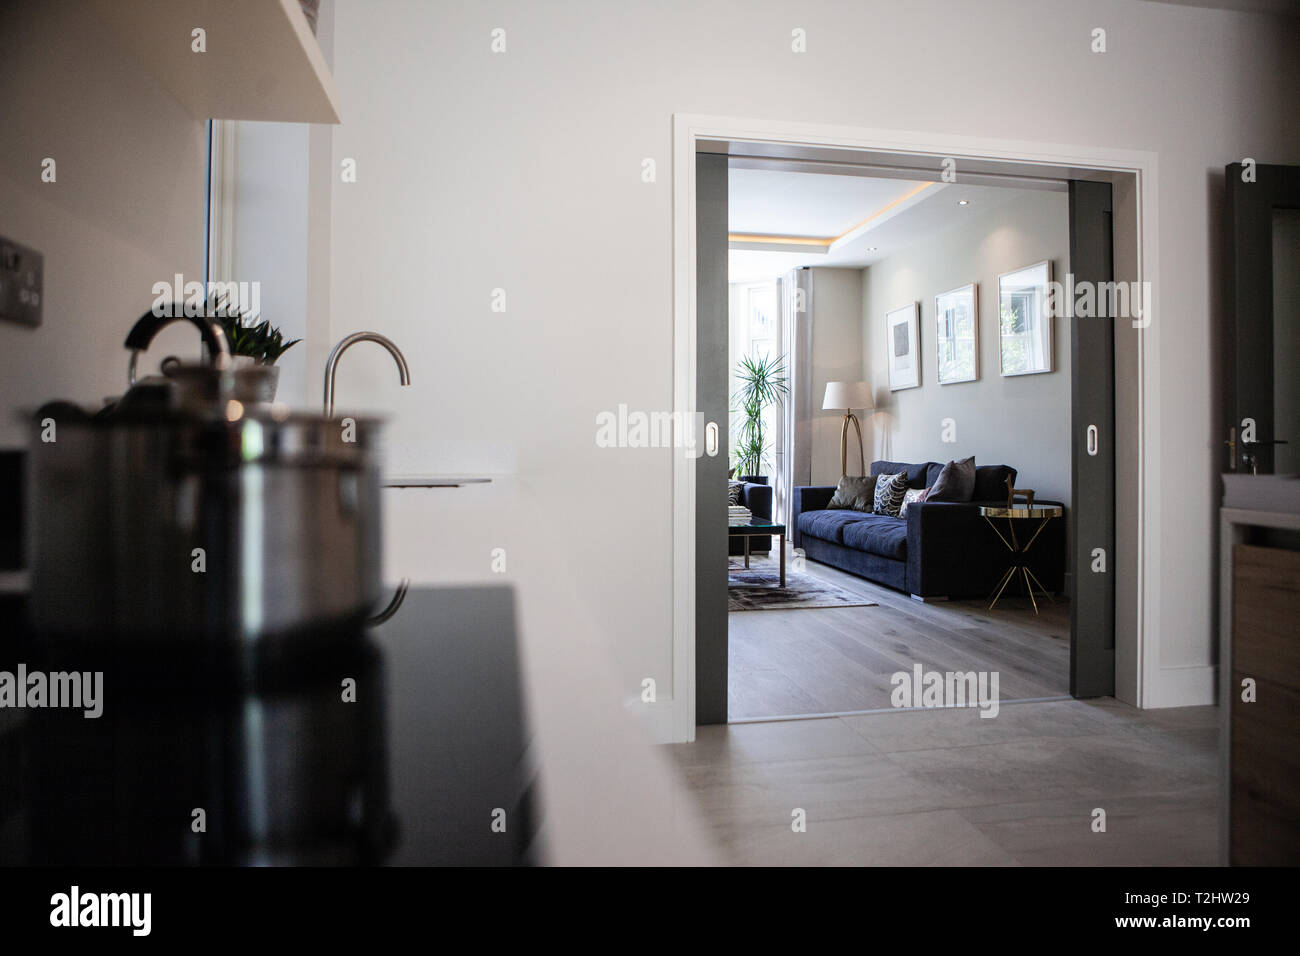 kitchen area showing inter connected rooms to family room in front of house through double doors. - Stock Image